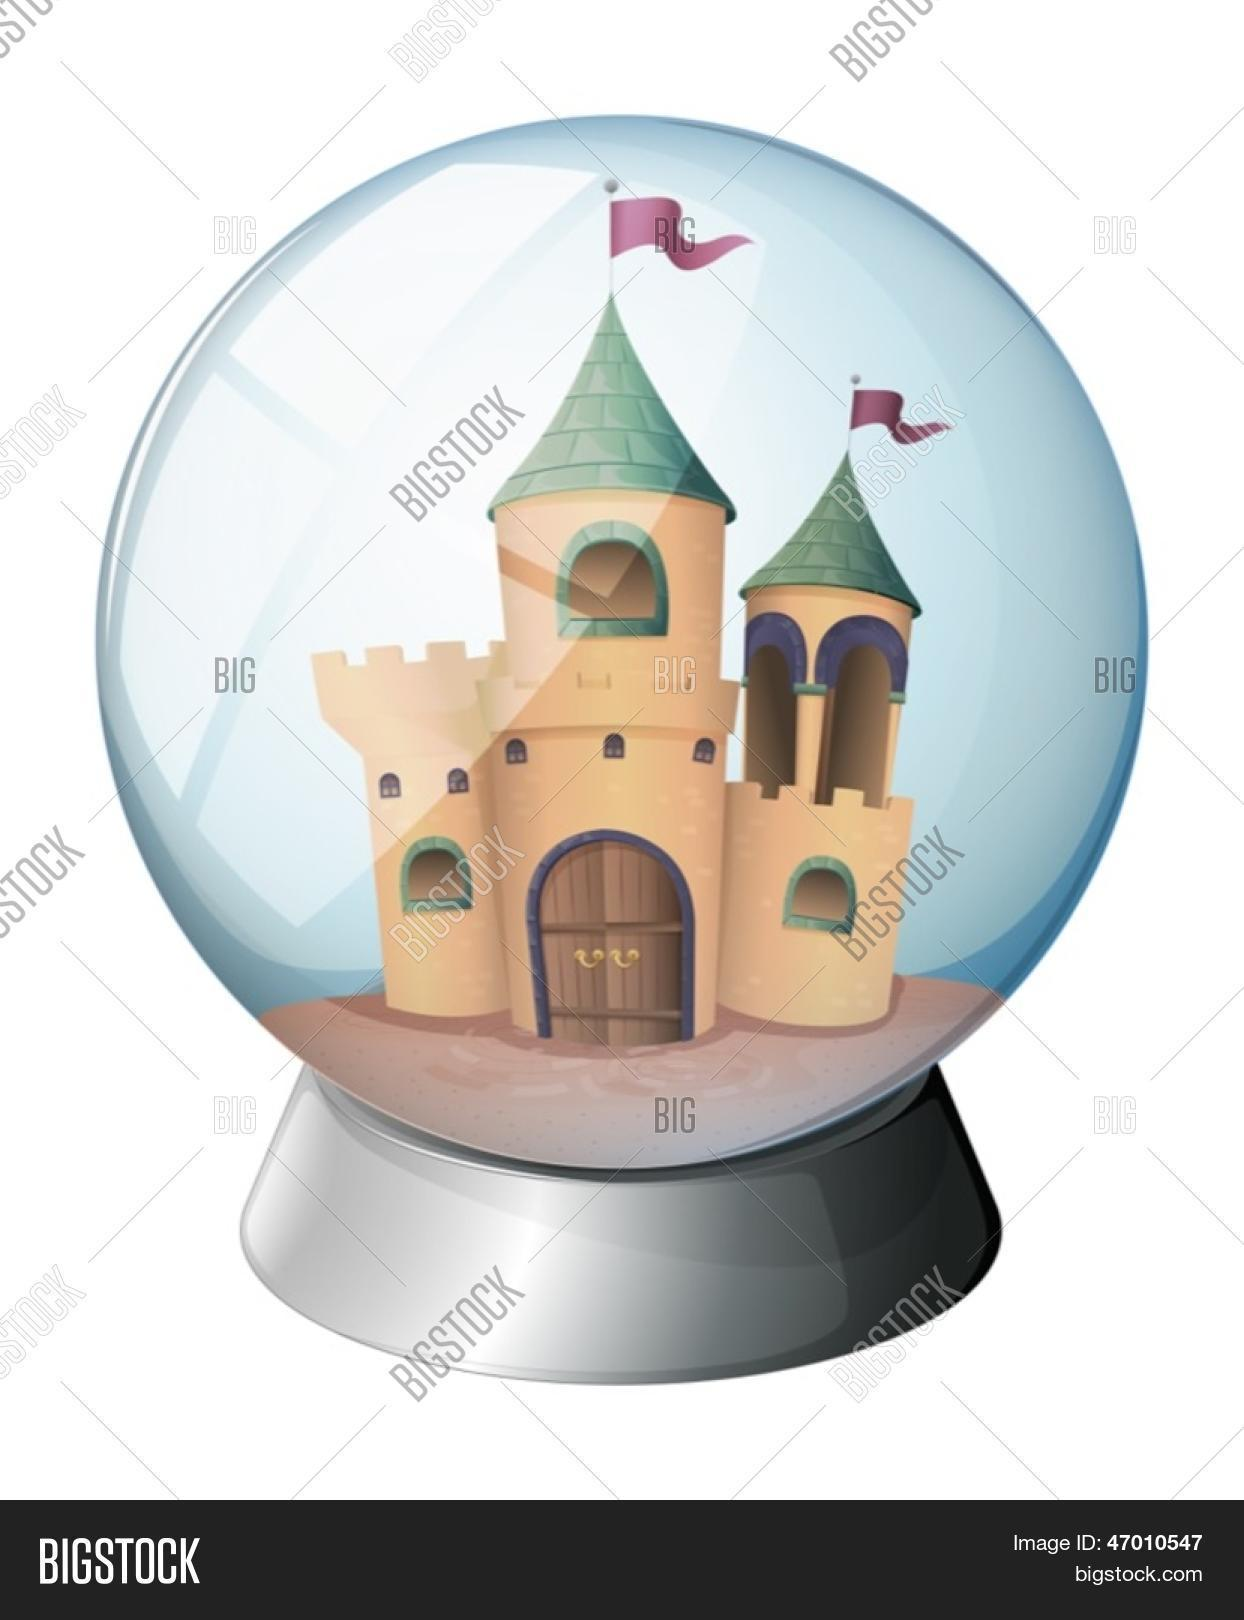 Illustration of a castle inside a glass dome on a white background.